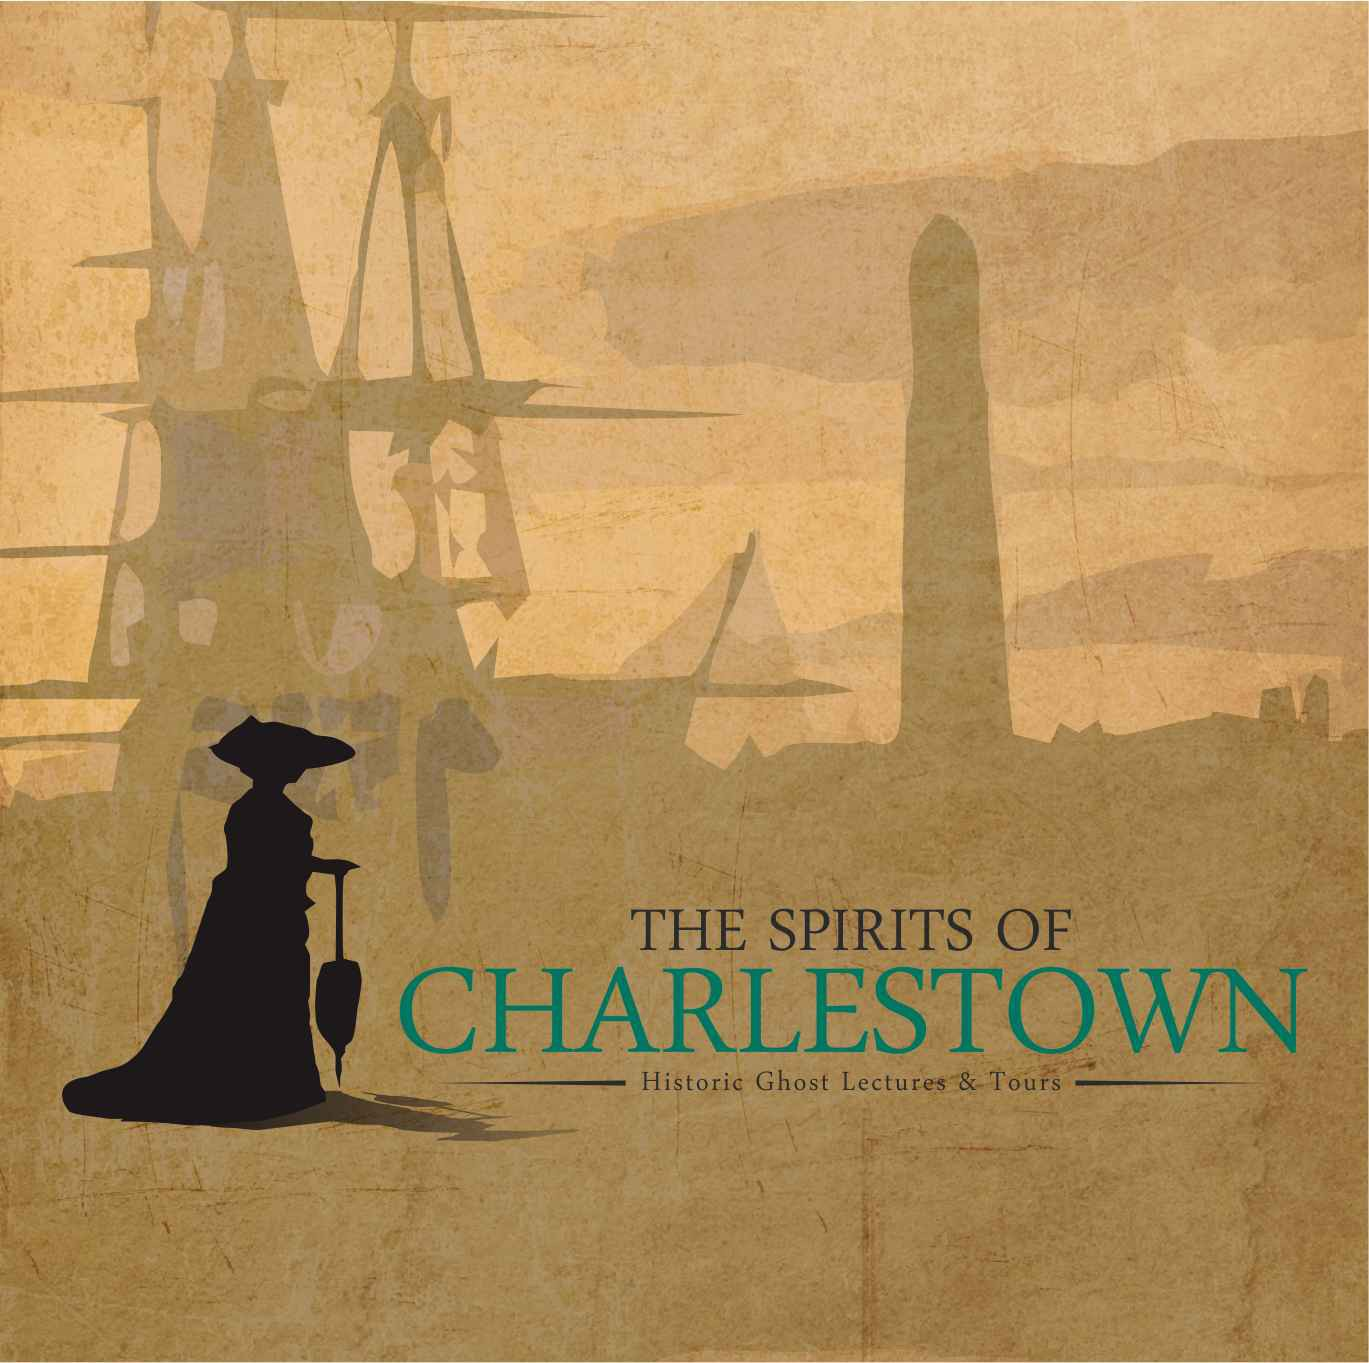 logo for The Spirits of Charlestown